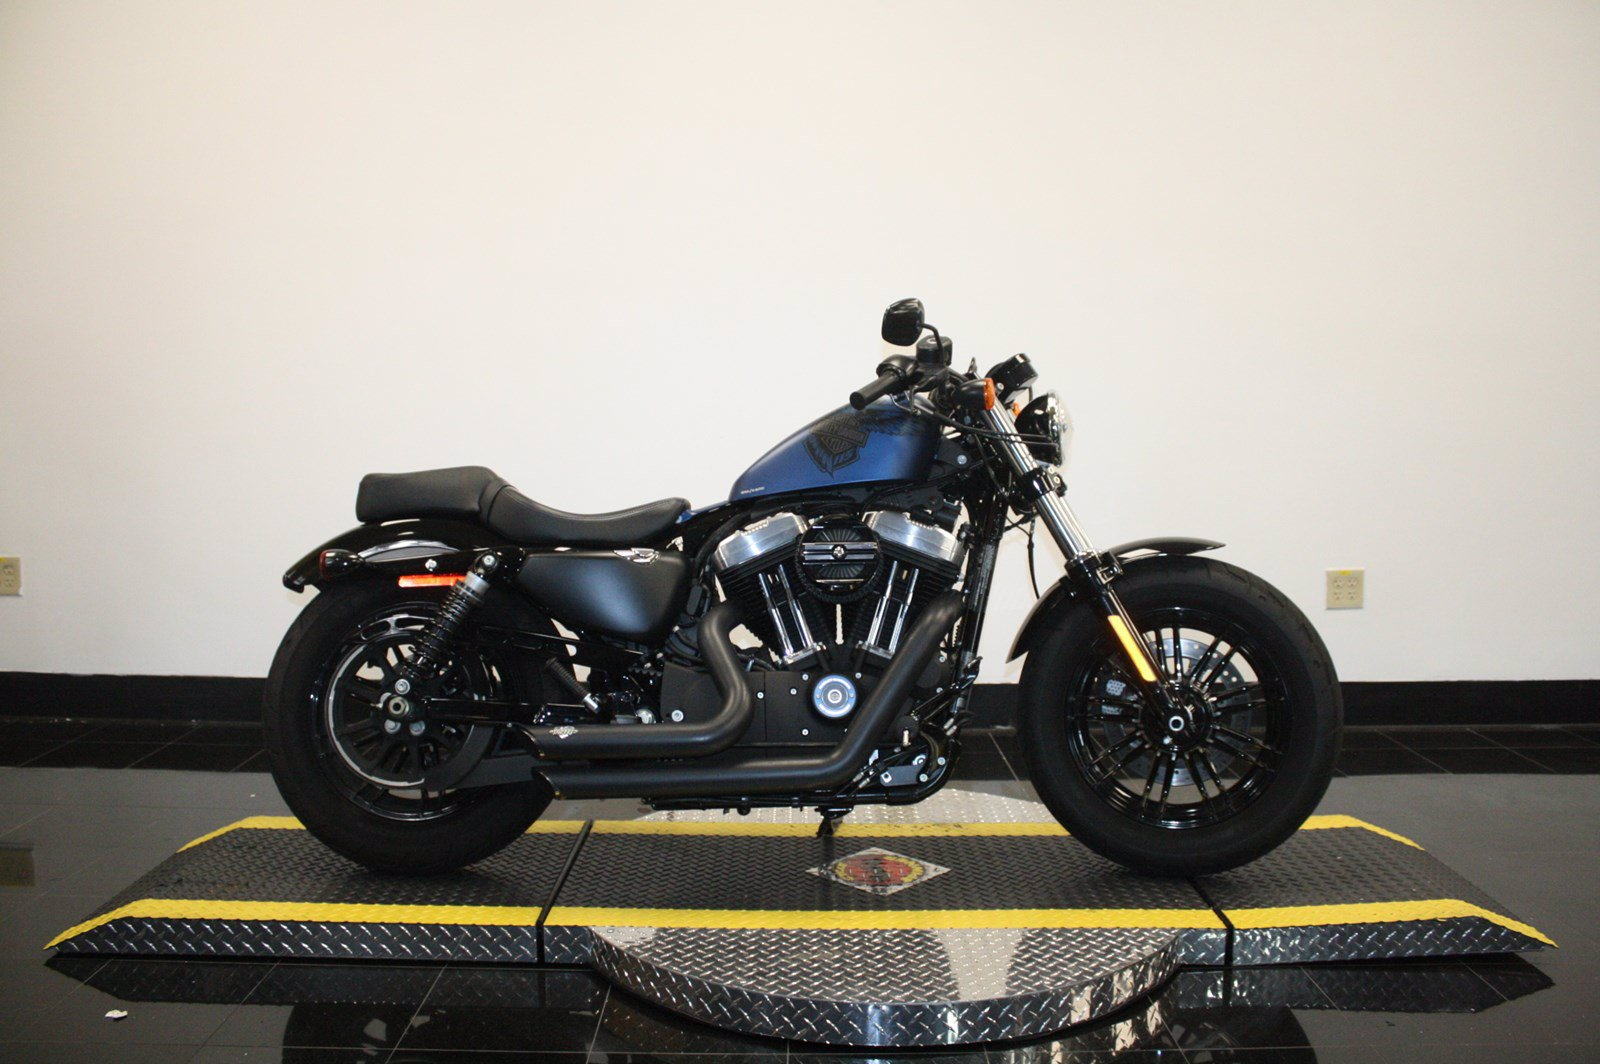 Pre-Owned 2018 Harley-Davidson Sportster Forty-Eight 115th Anniversary XL1200X